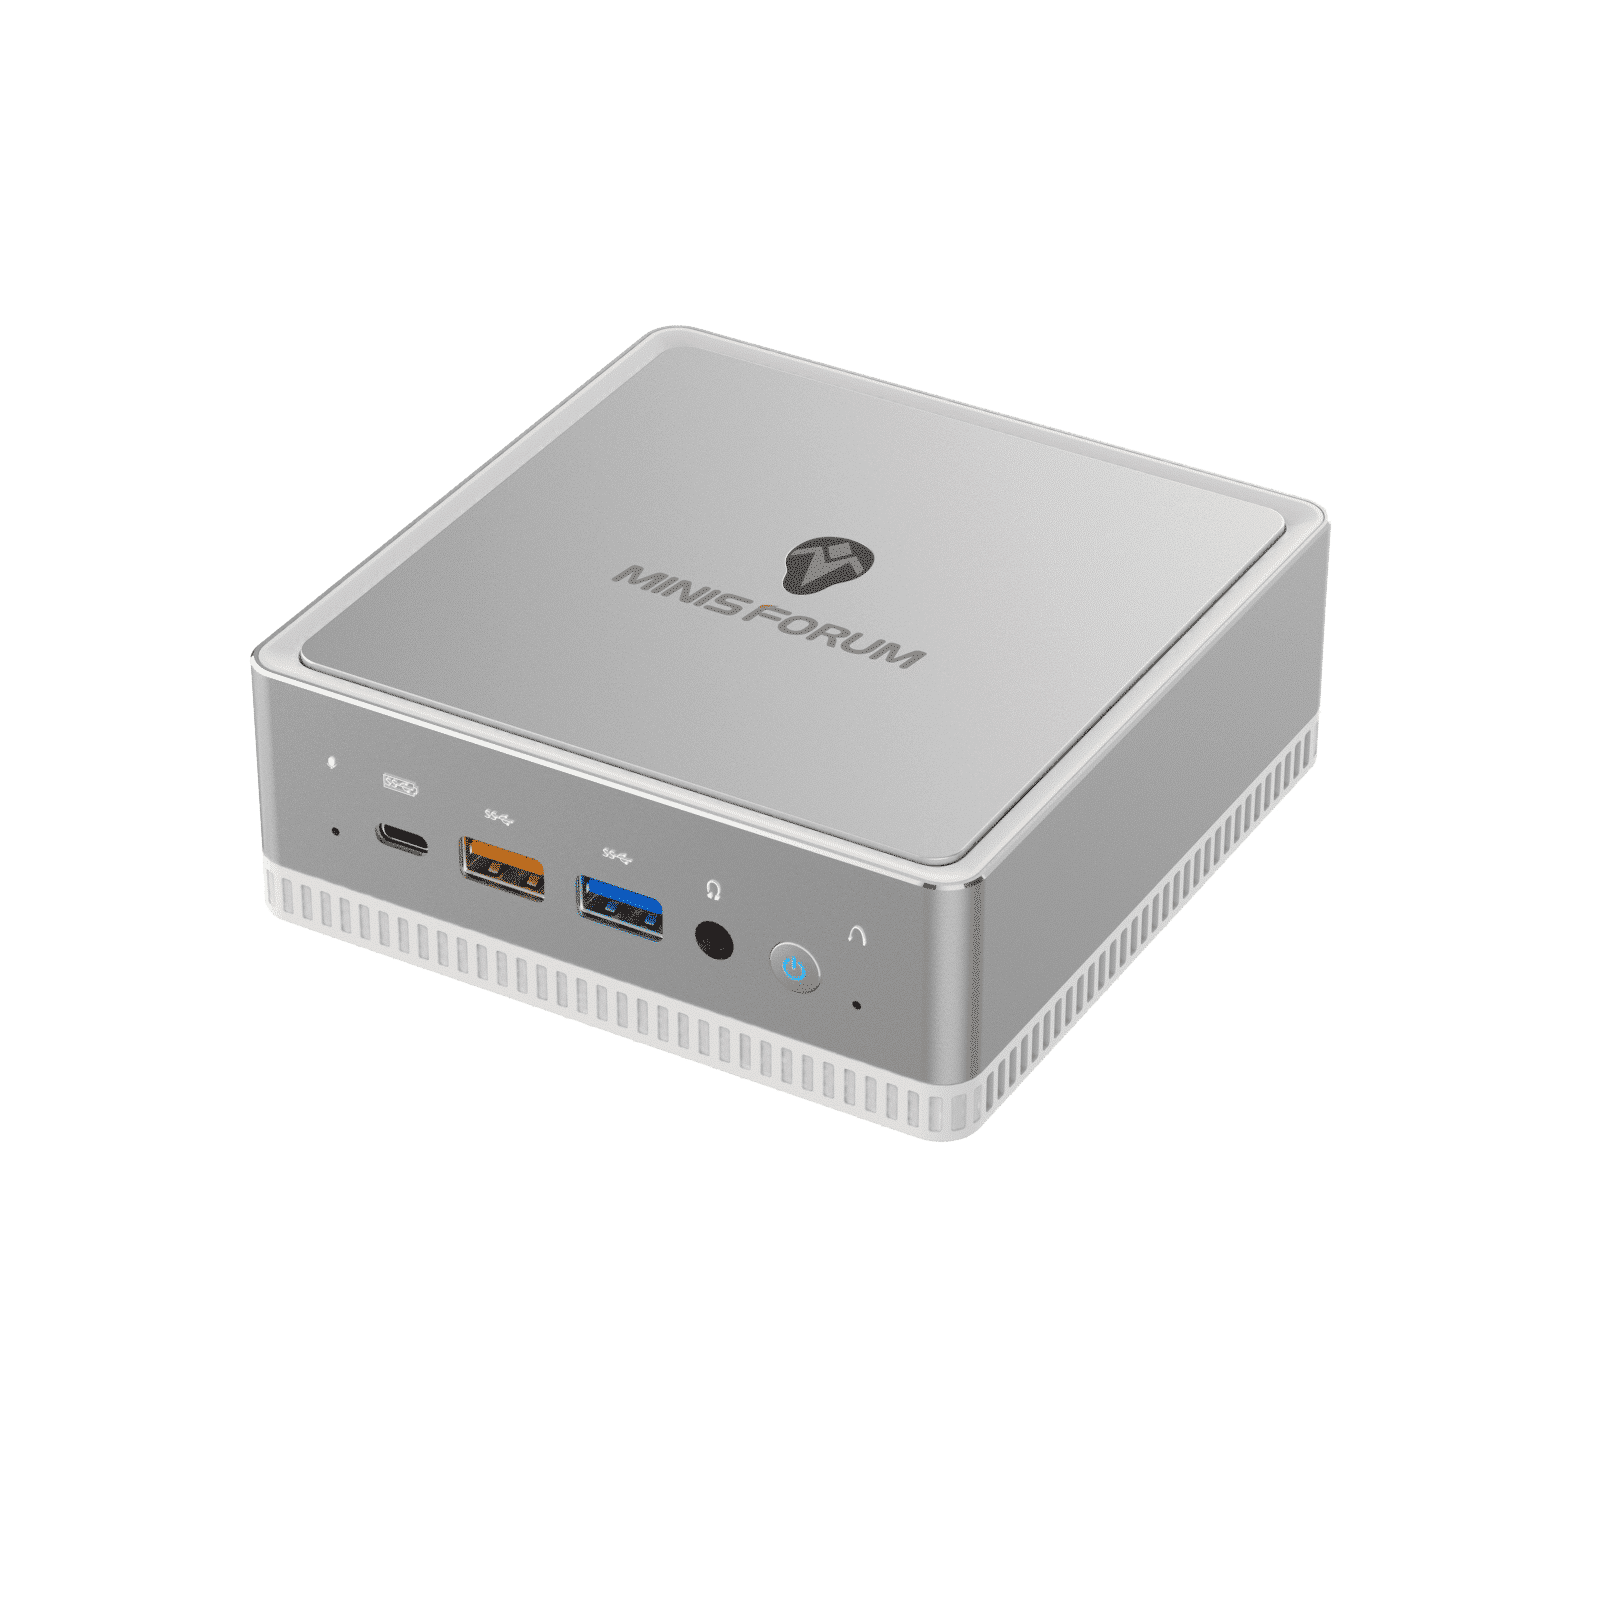 MinisForum DeskMini UM250 Ryzen Mini PC - Shown from the front at angle with 3 USB Ports, 3.5mm Audio Port and Power button